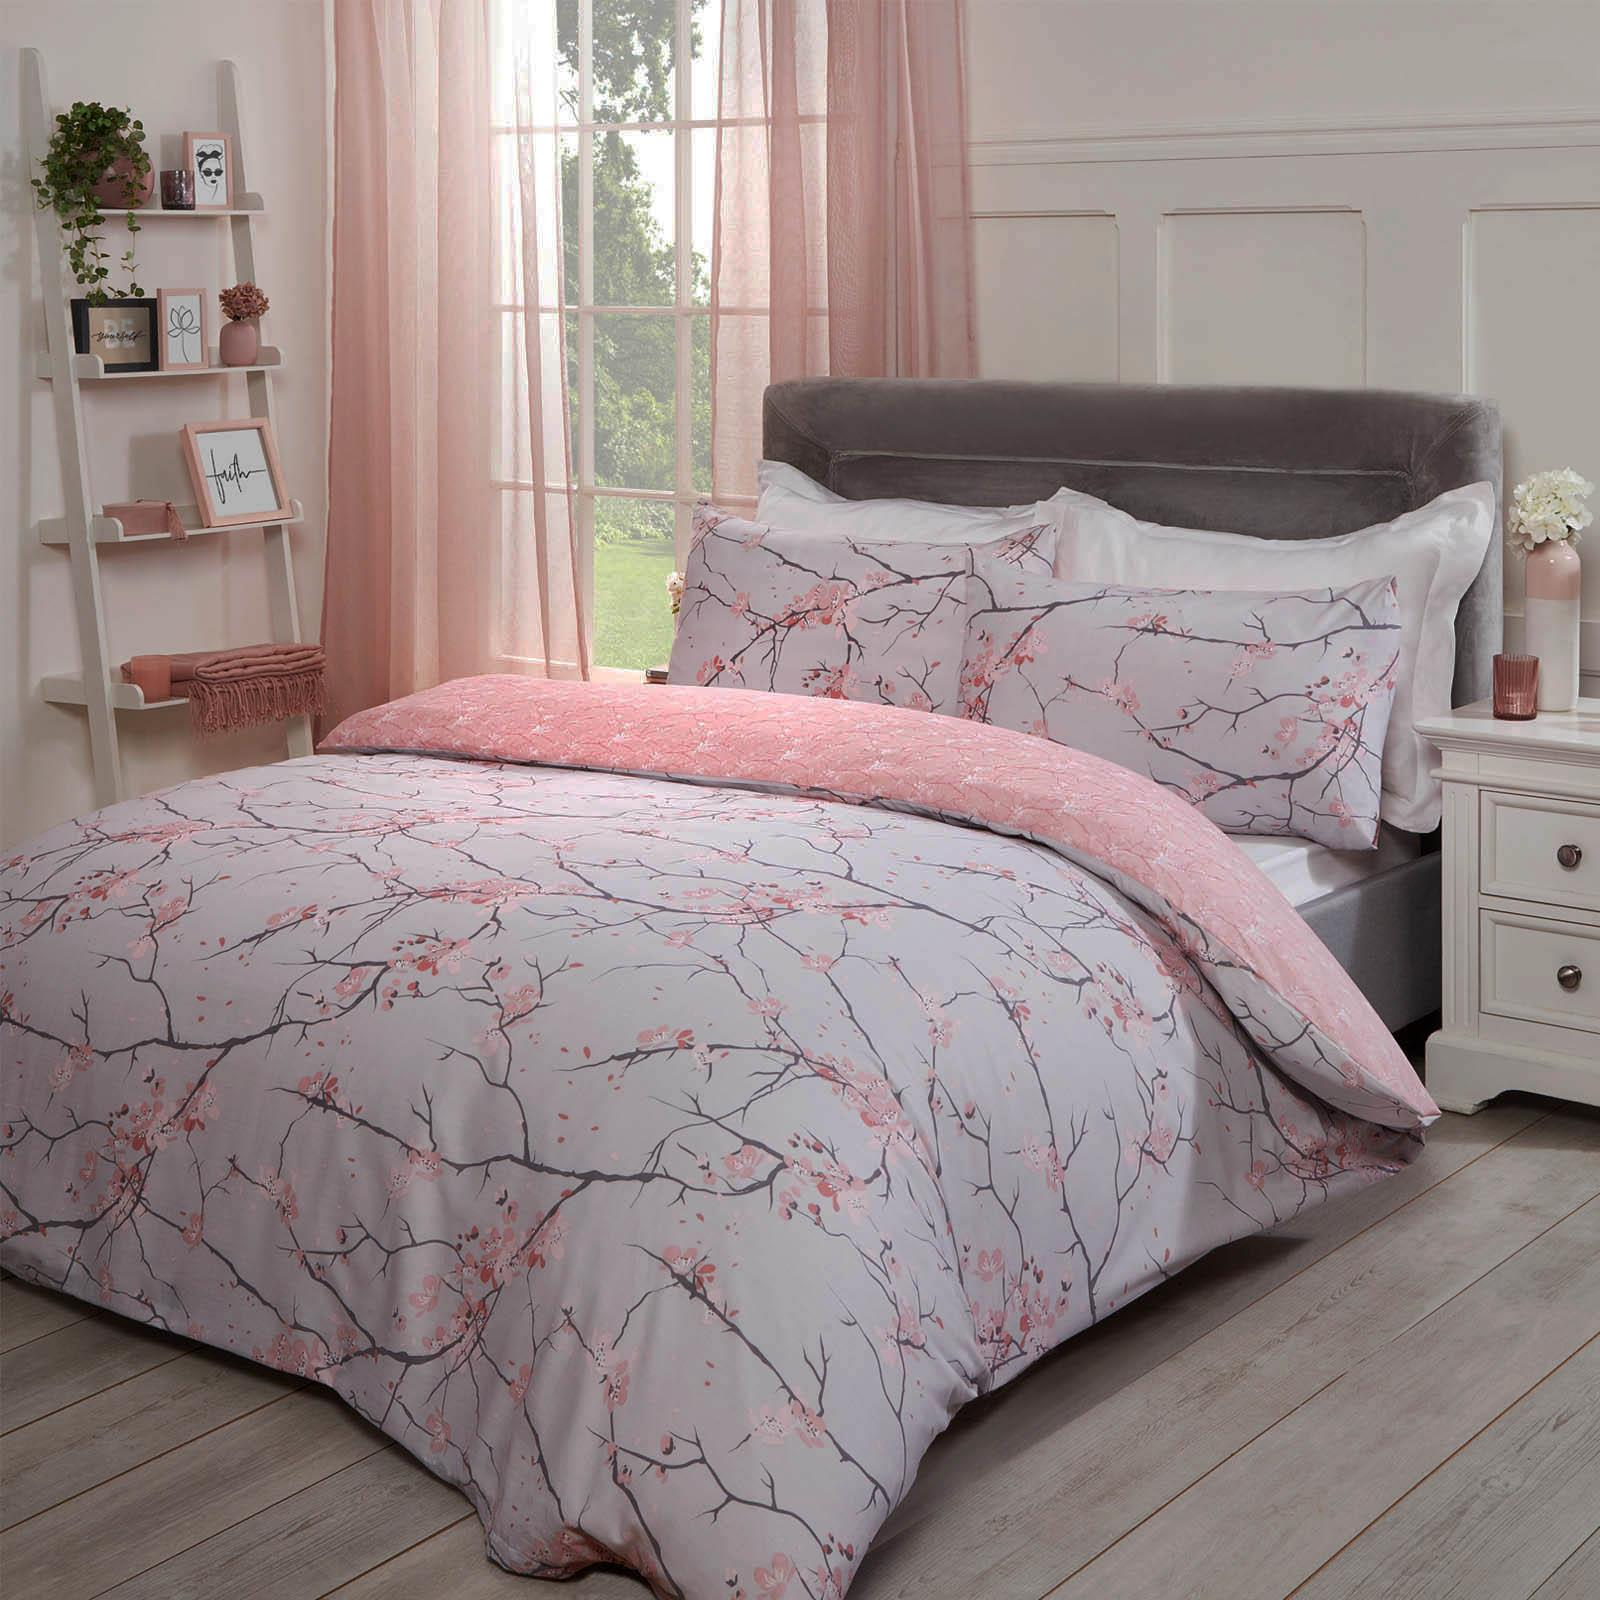 thumbnail 5 - Dreamscene Spring Blossoms Duvet Cover with Pillowcases Bedding Set Blush Ochre